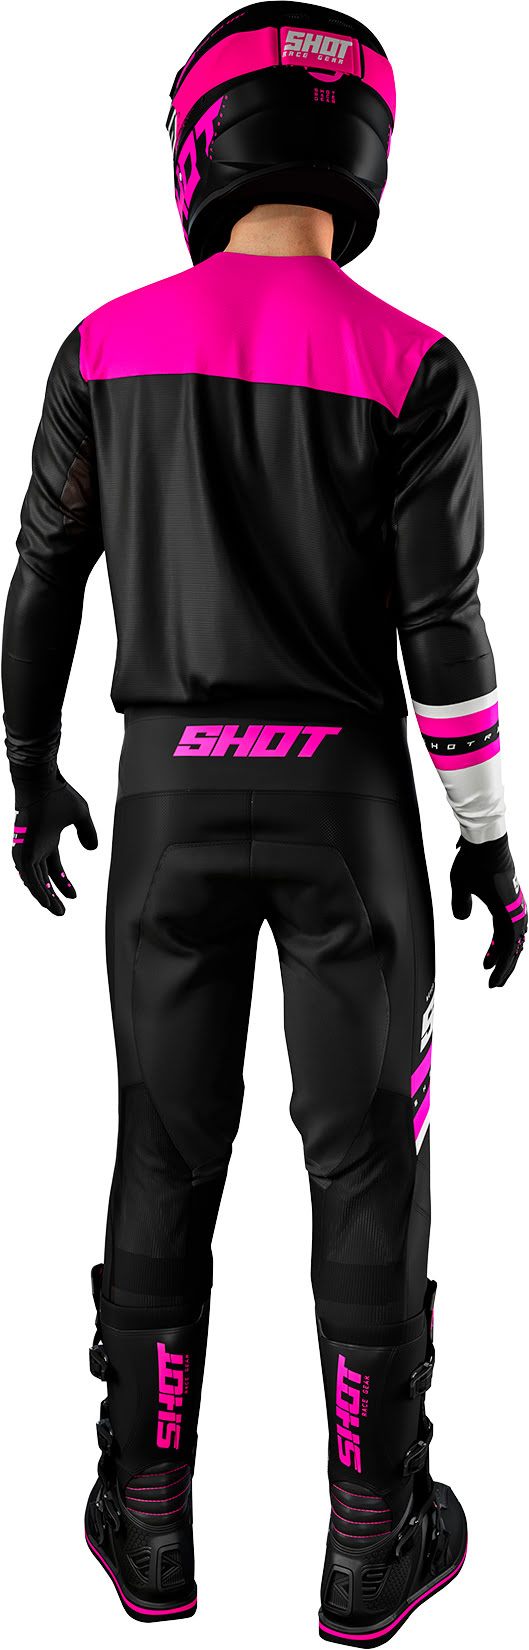 Equipamento CONTACT SHINING SHOT